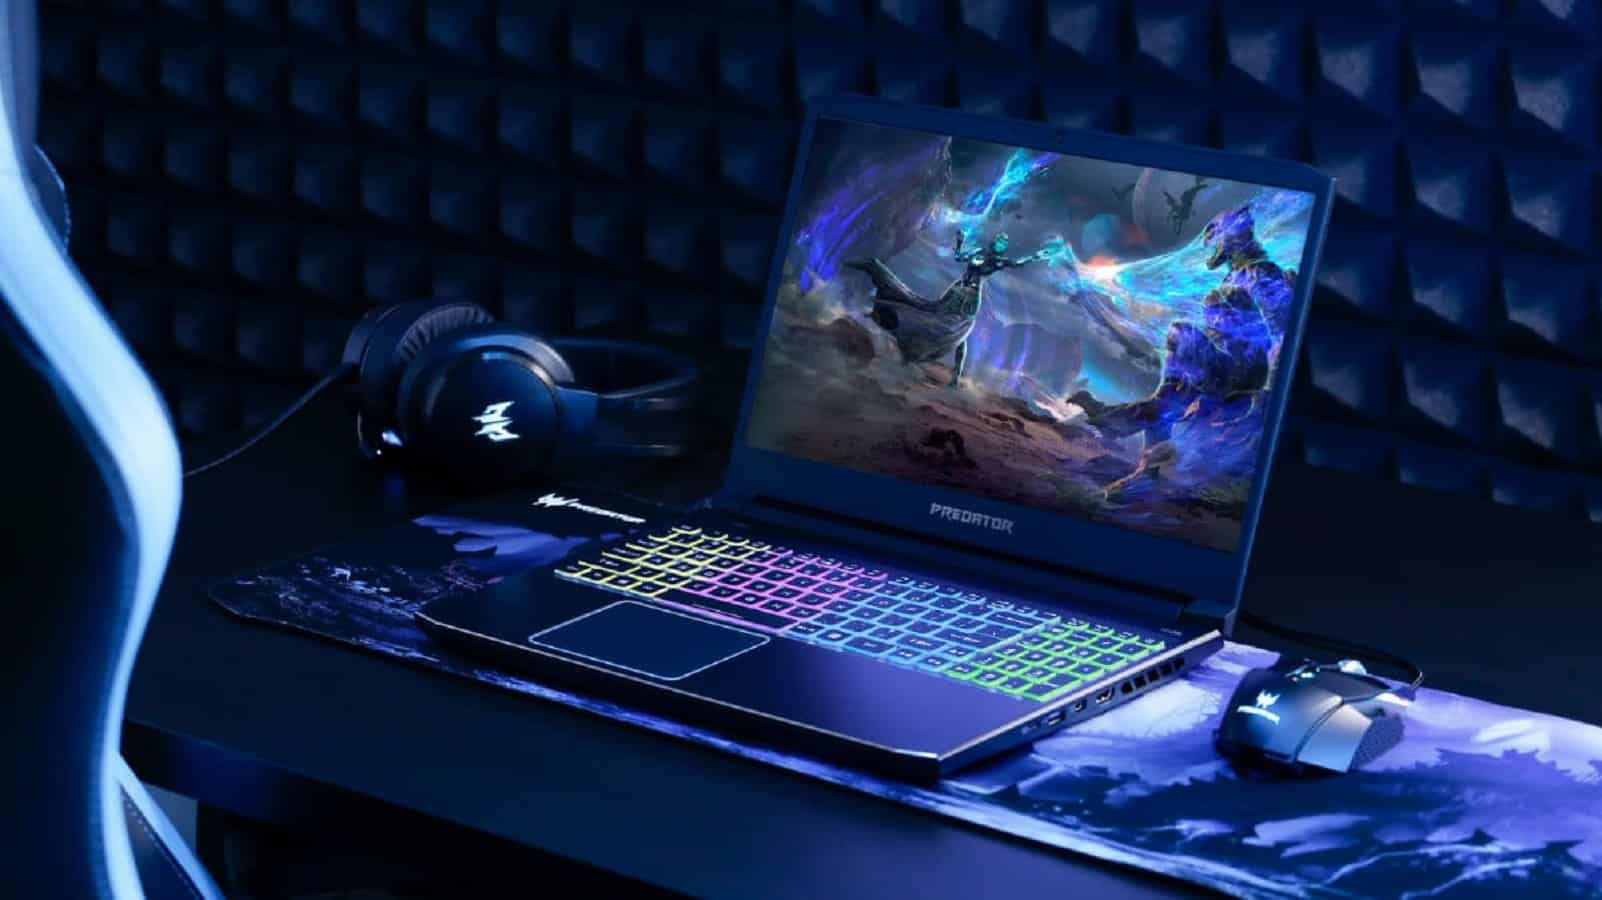 acer event showing off new gaming stuff